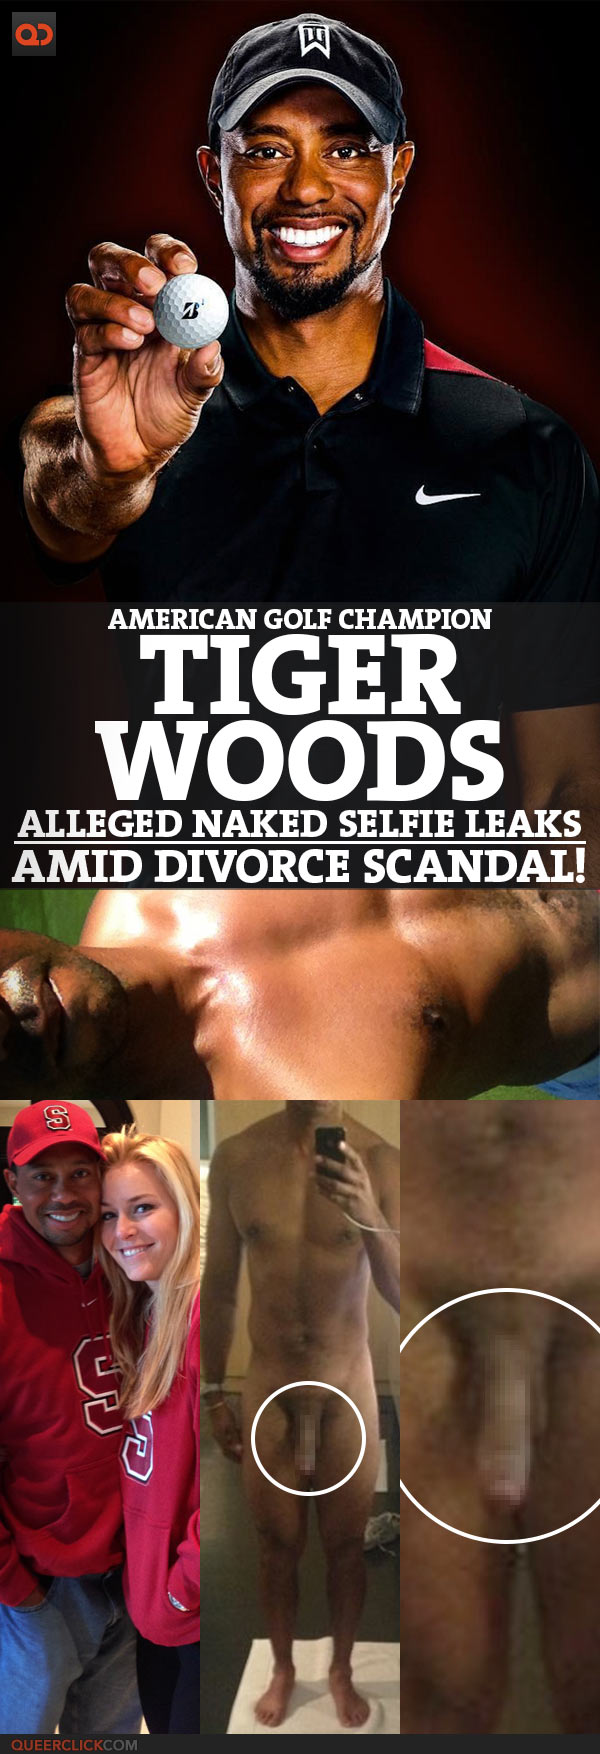 Tiger Woods, American Golf Champion, Alleged Naked Selfie Leaks Amid Divorce Scandal!